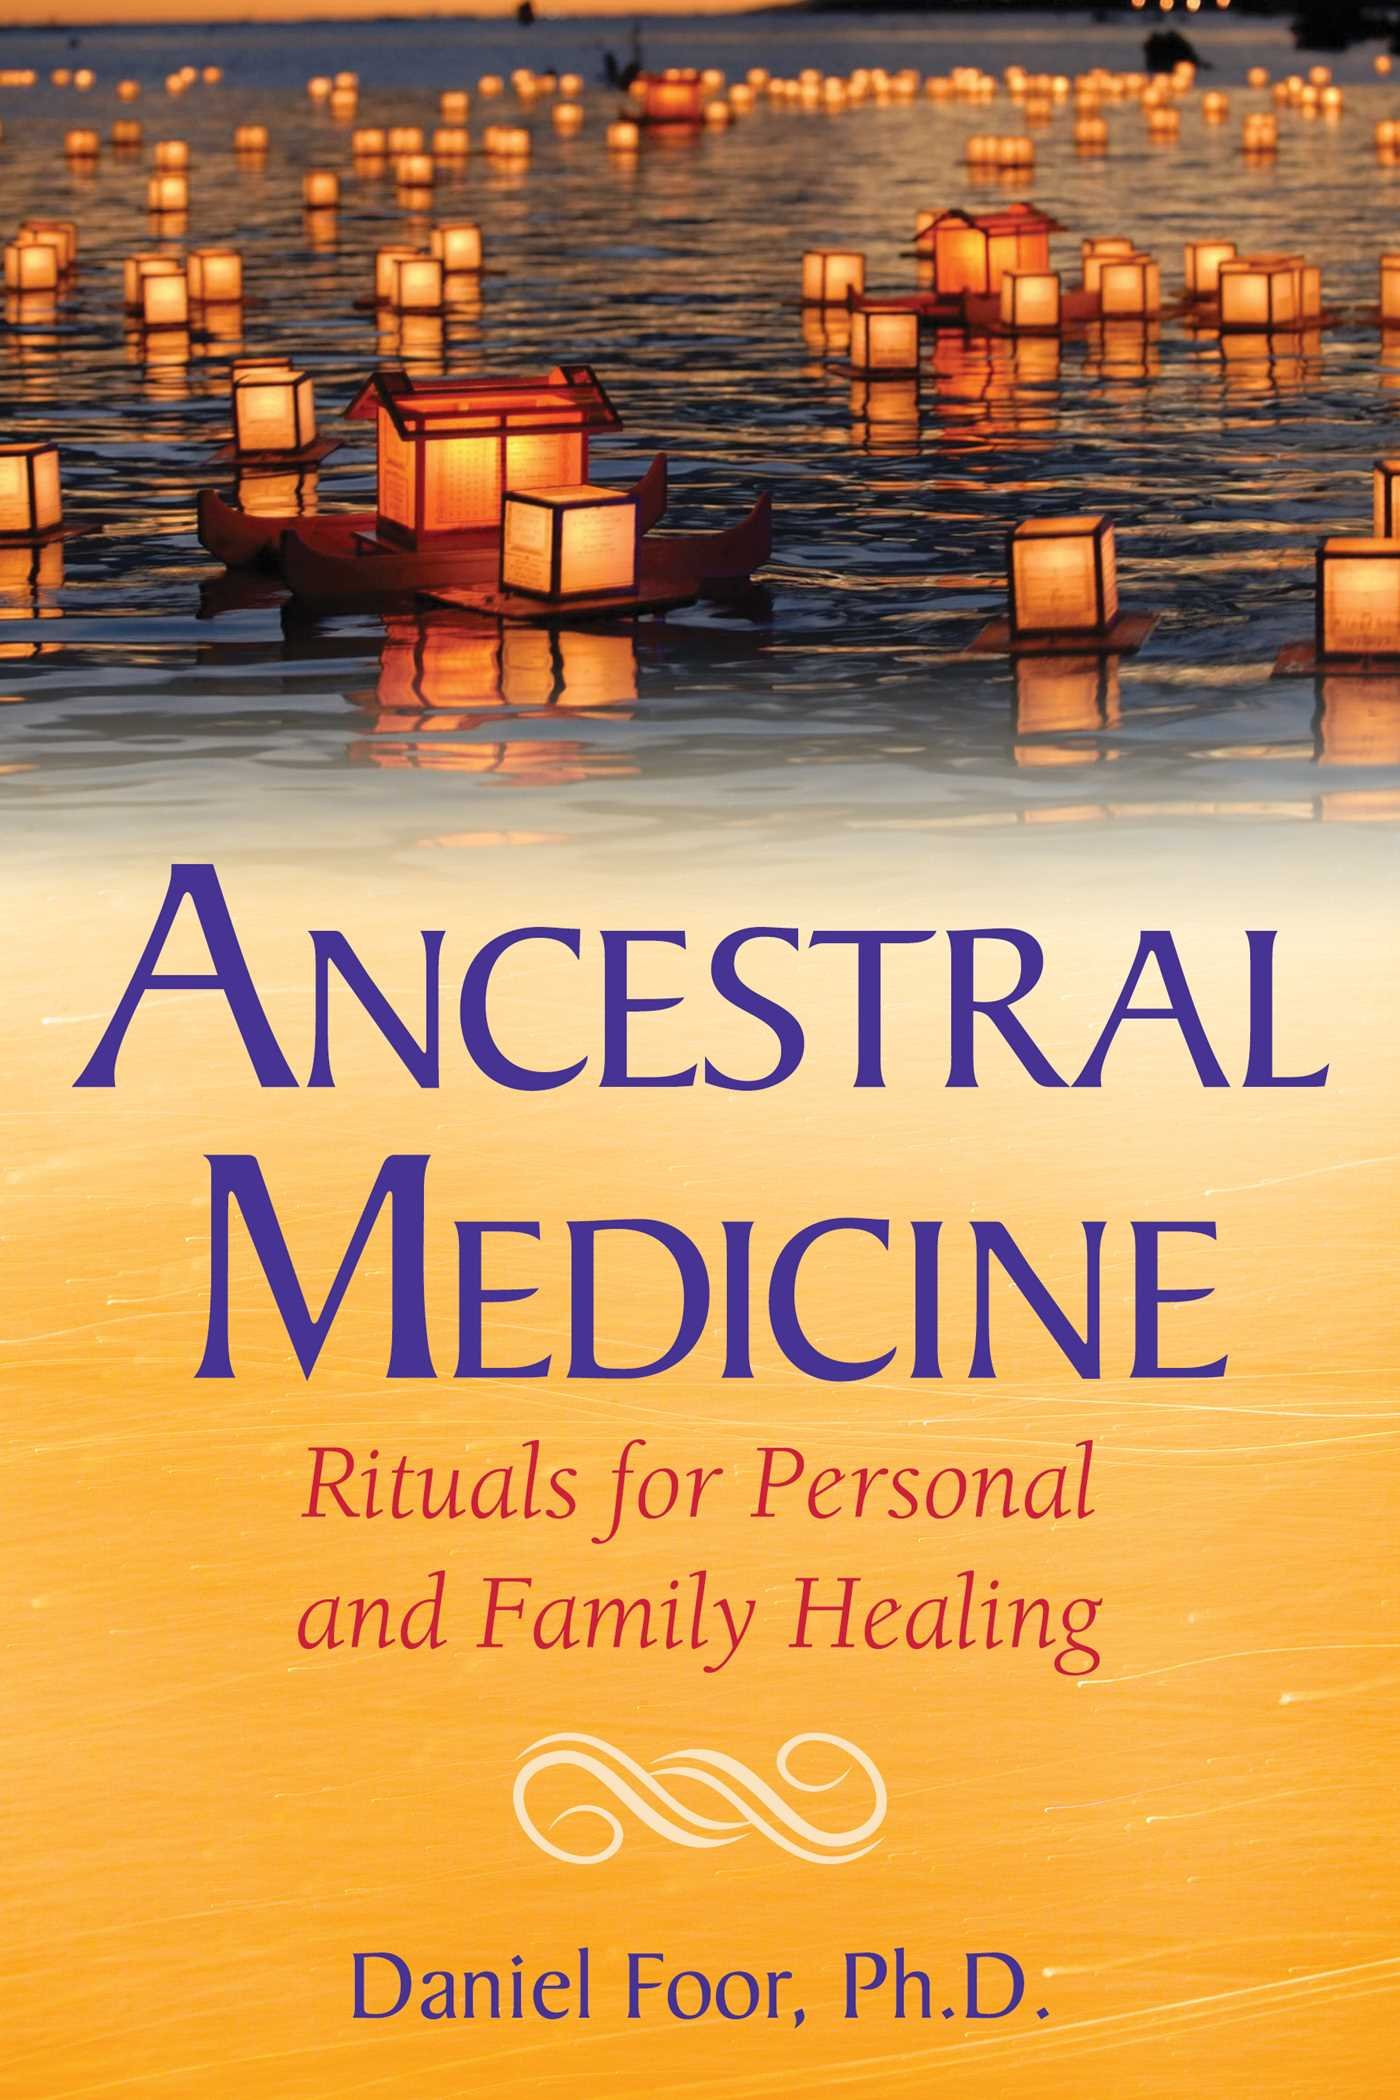 Ancestral Medicine: Rituals for Personal and Family Healing